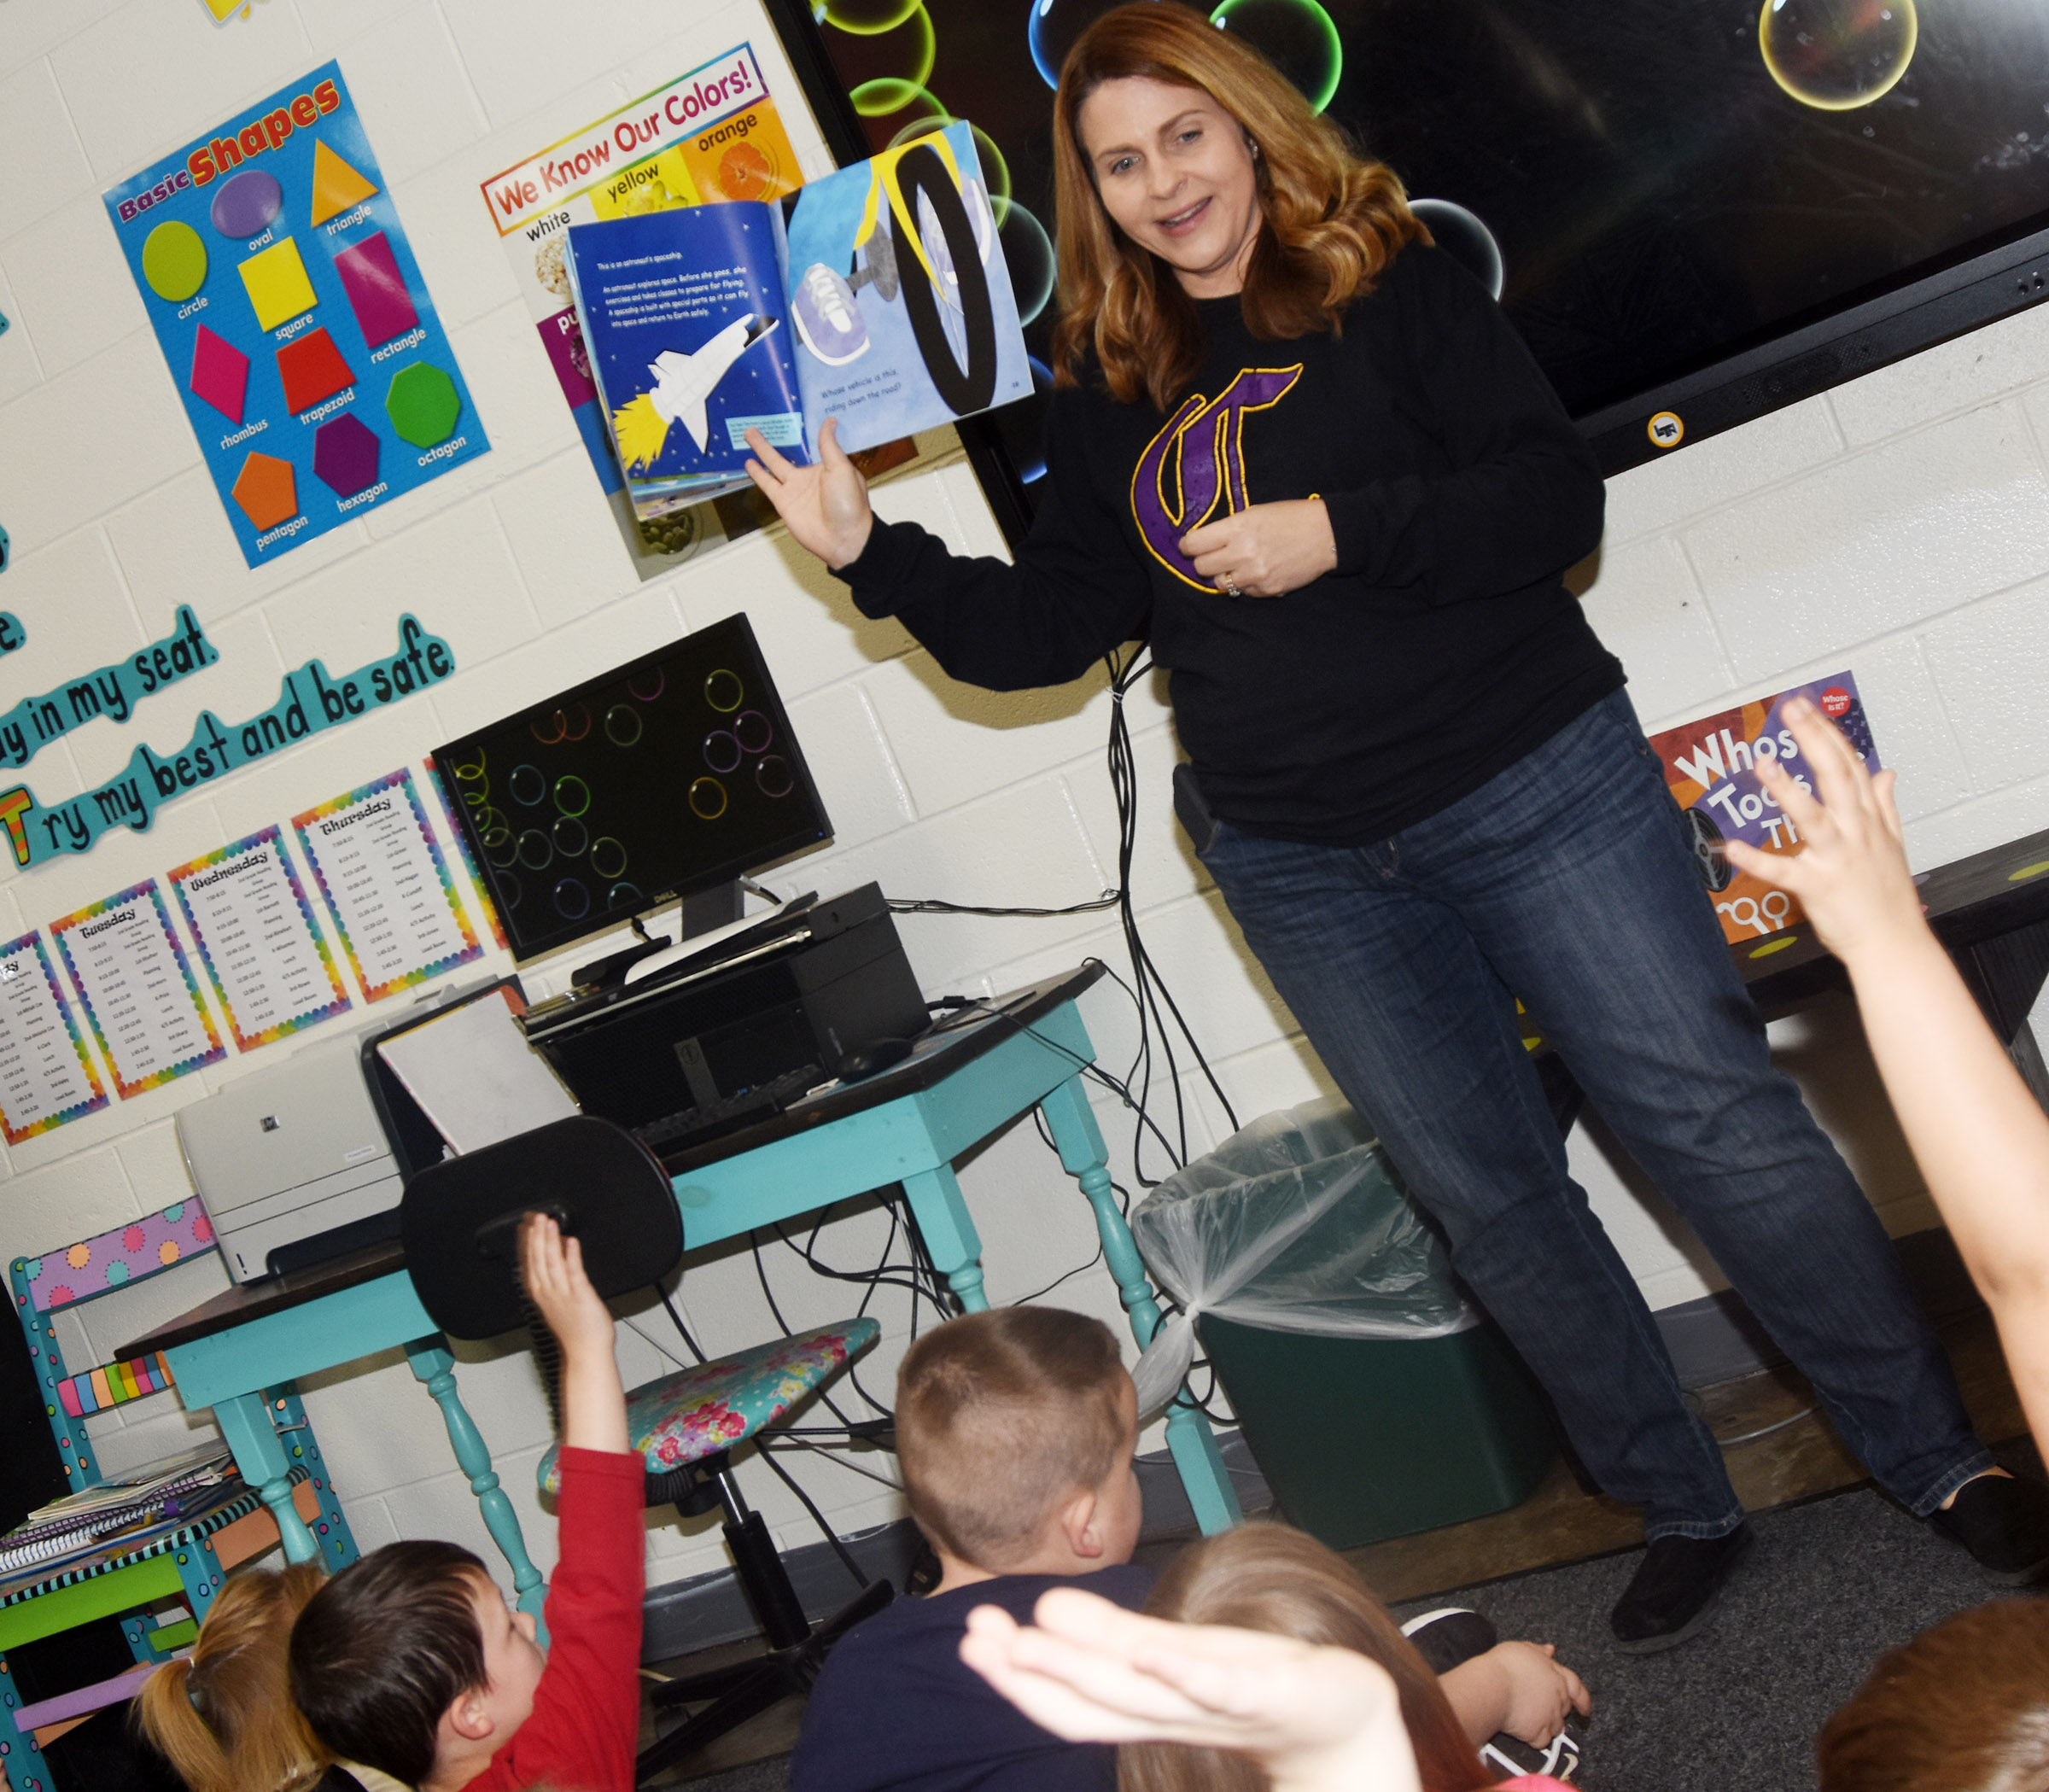 CES Guidance Counselor Sonya Orberson asks CES kindergarteners who wants to be an astronaut when they get older.